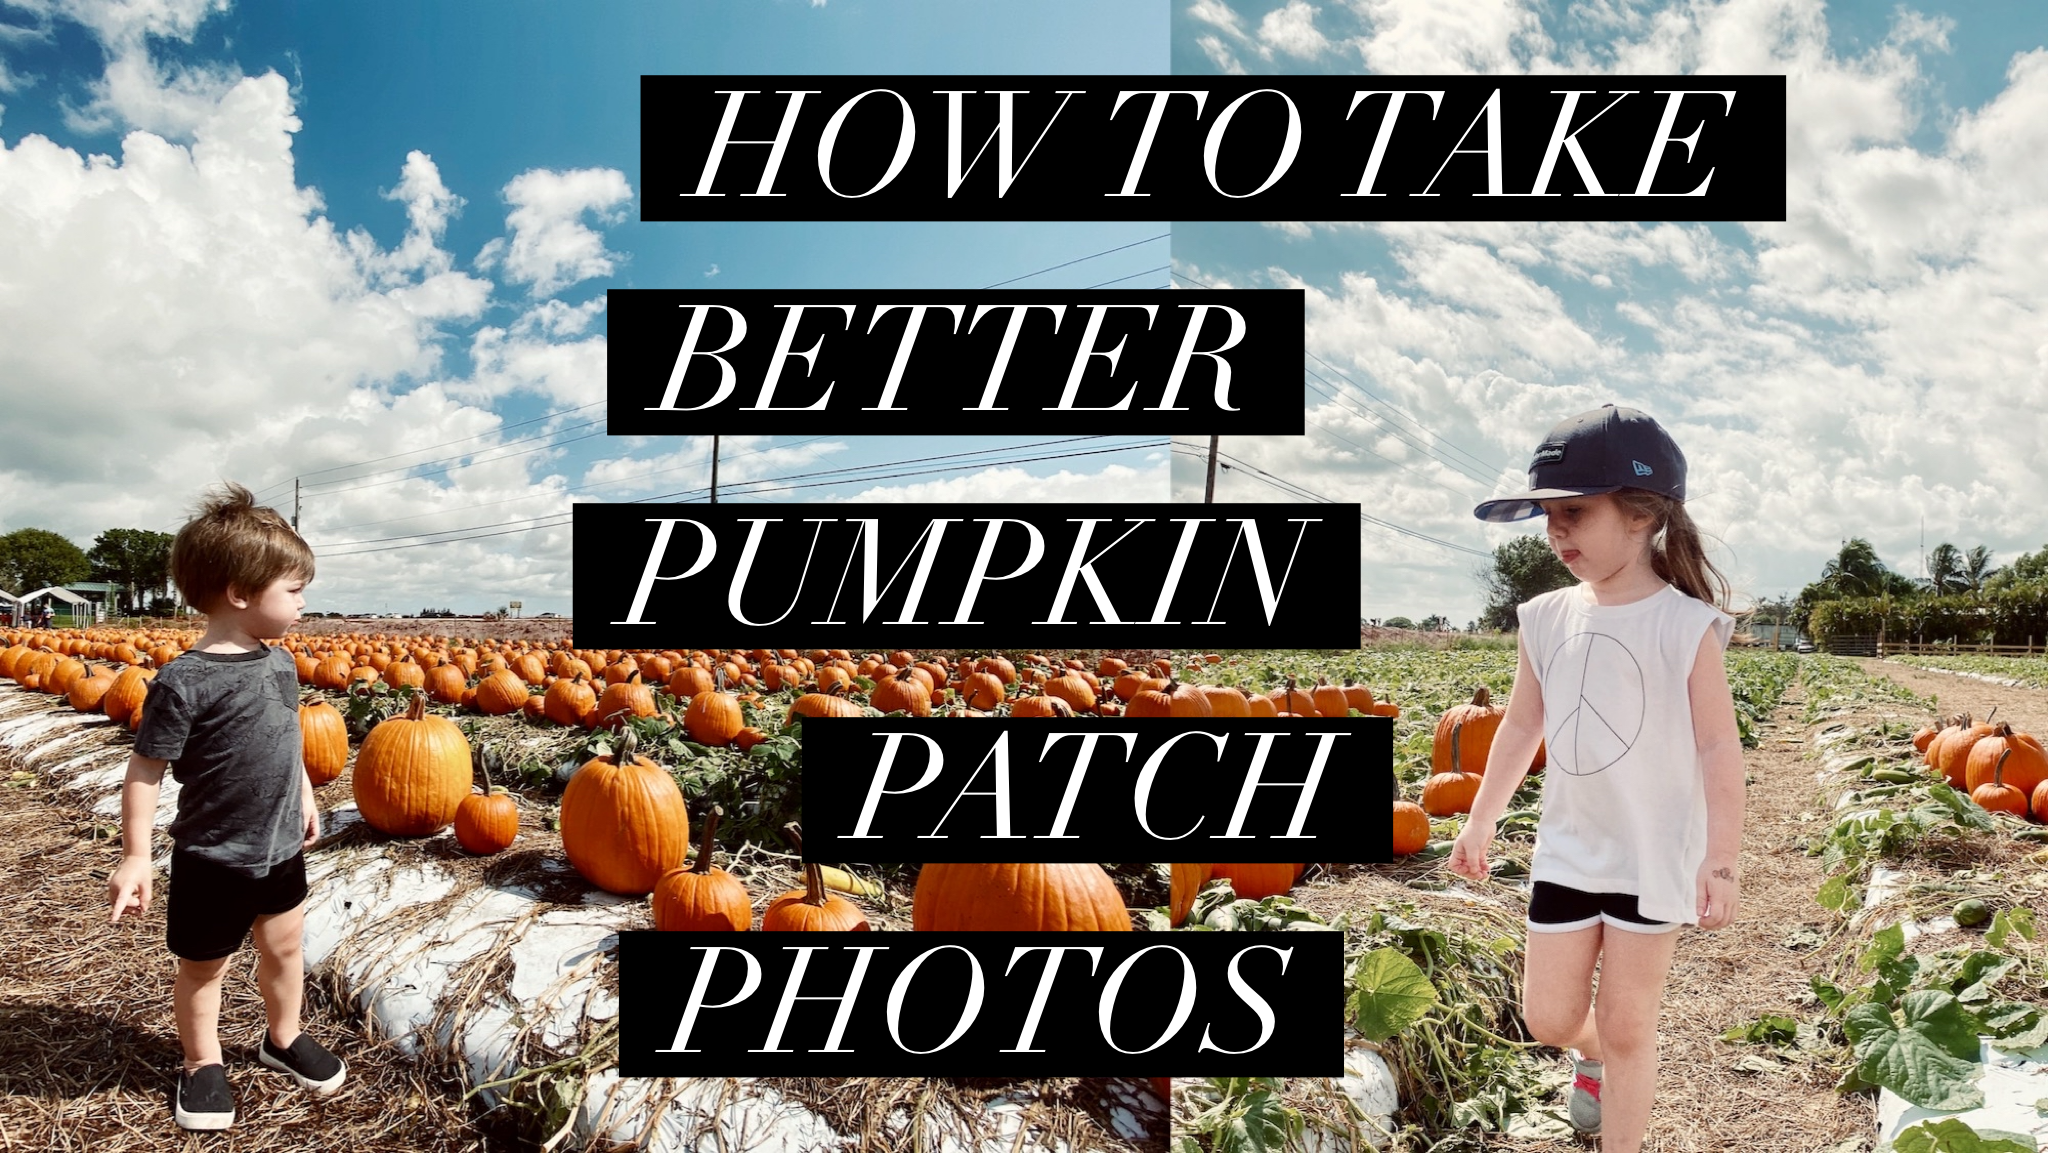 How to take better photos at the pumpkin patch